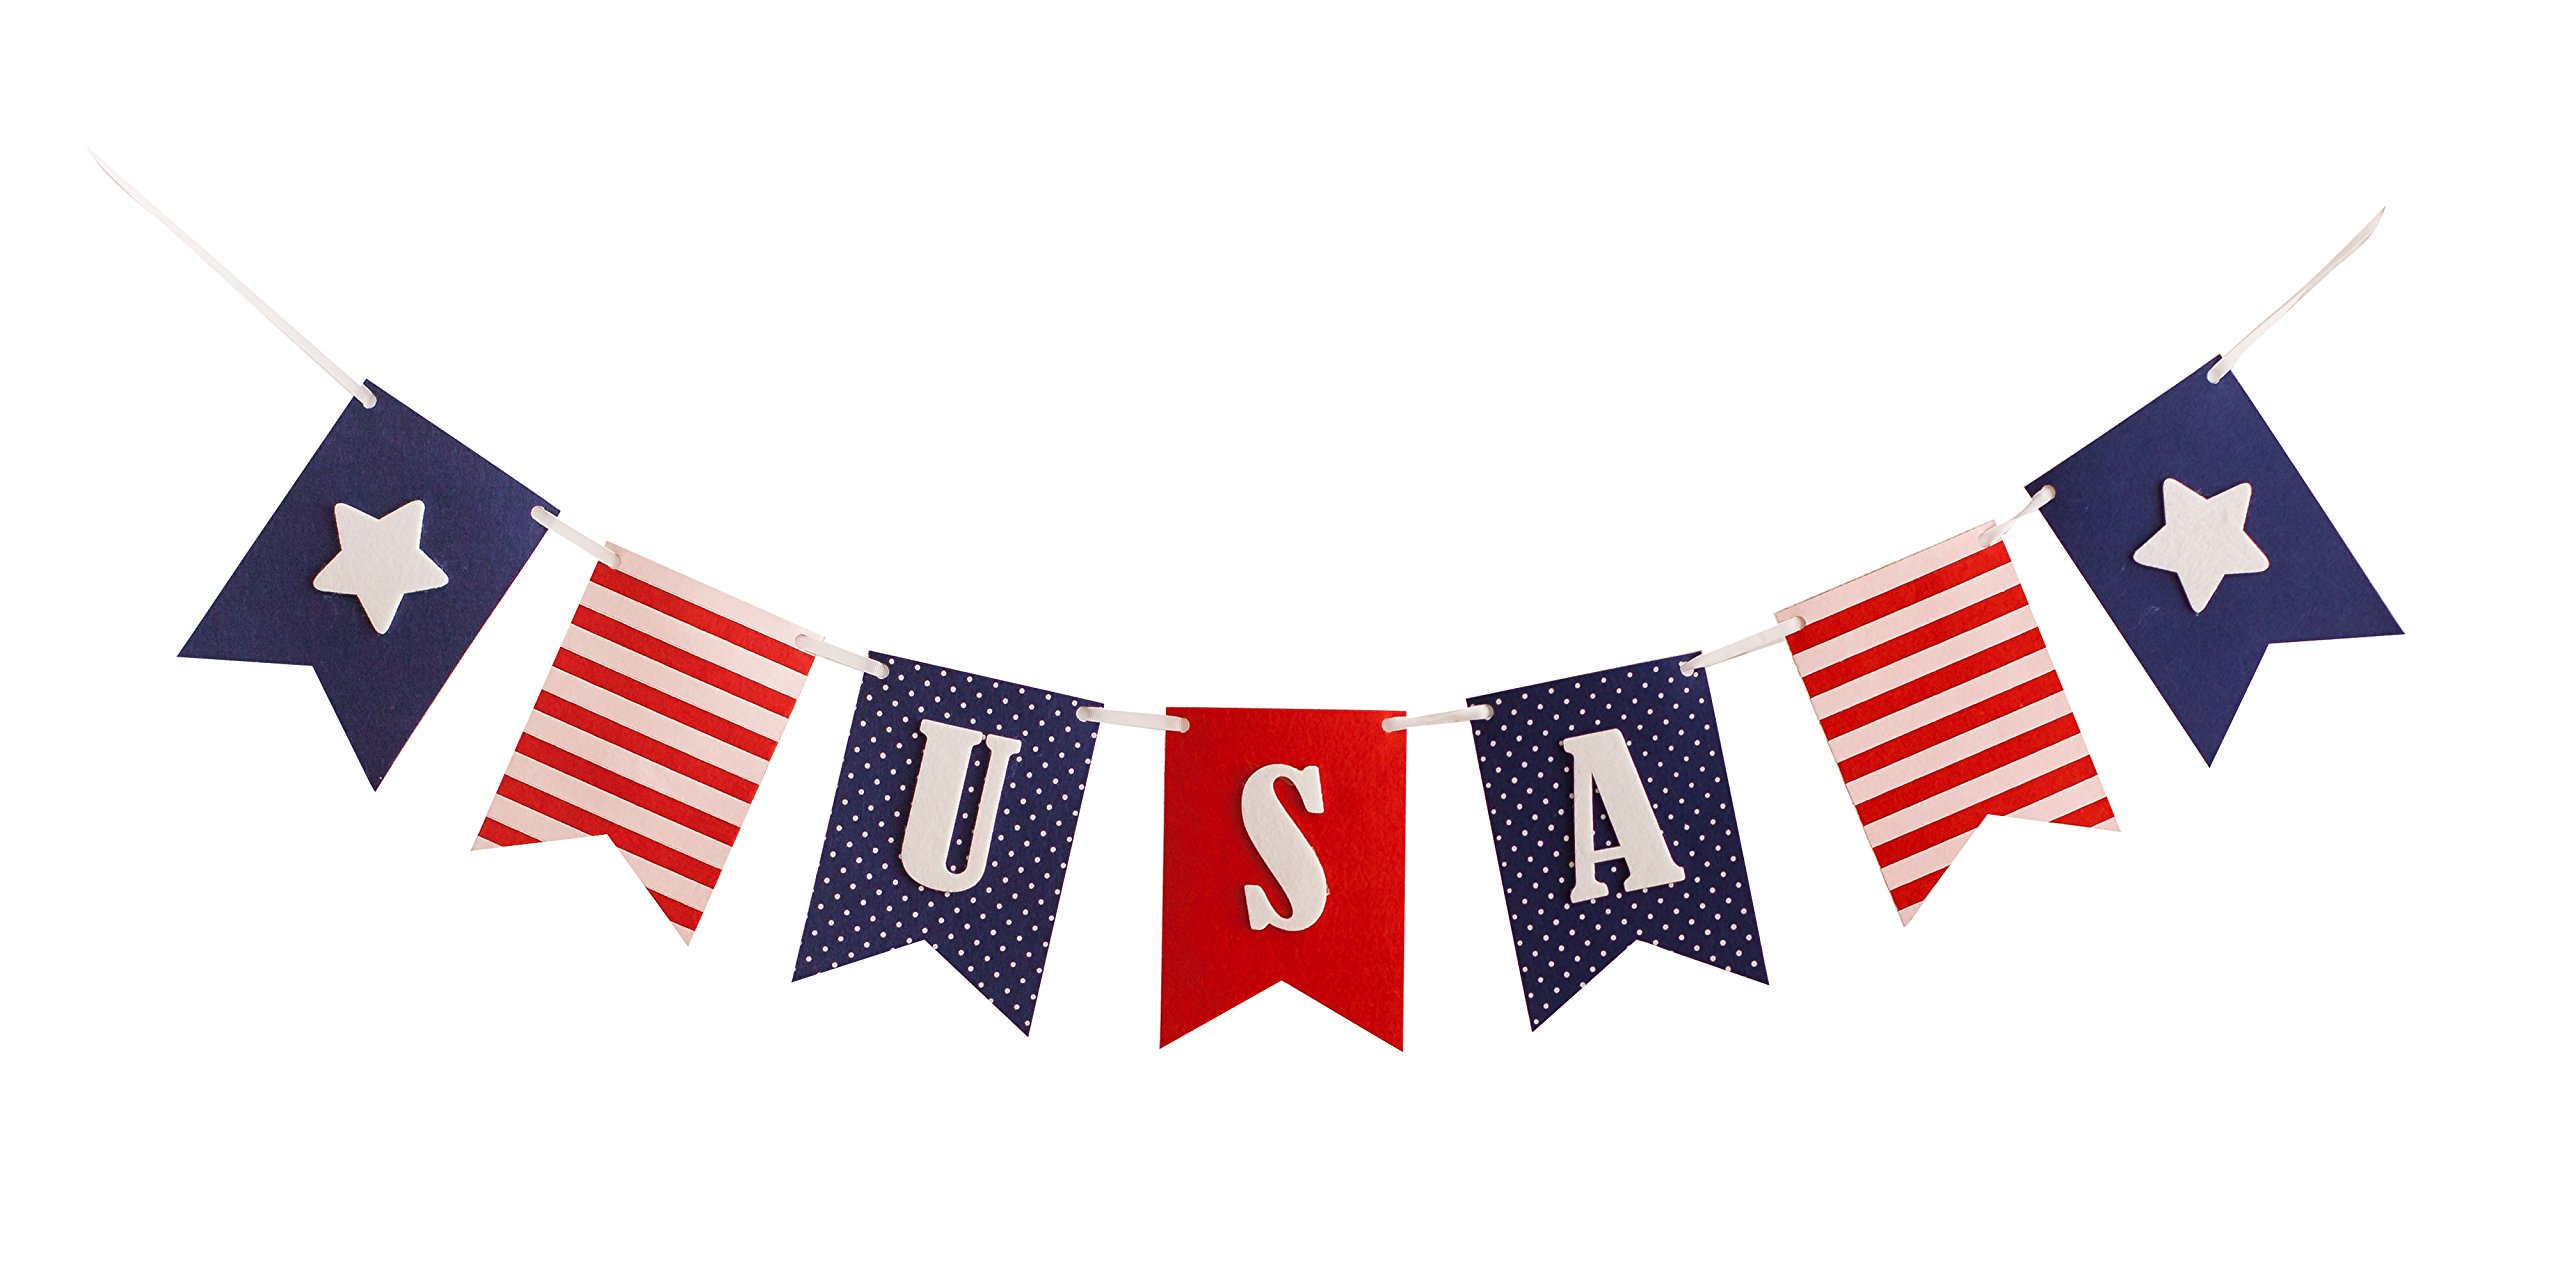 USA Banner Bunting Laser Cut Felt 40 inches wide - Patriotic Americana Red, White, & Blue America! by Decomod (Image #1)